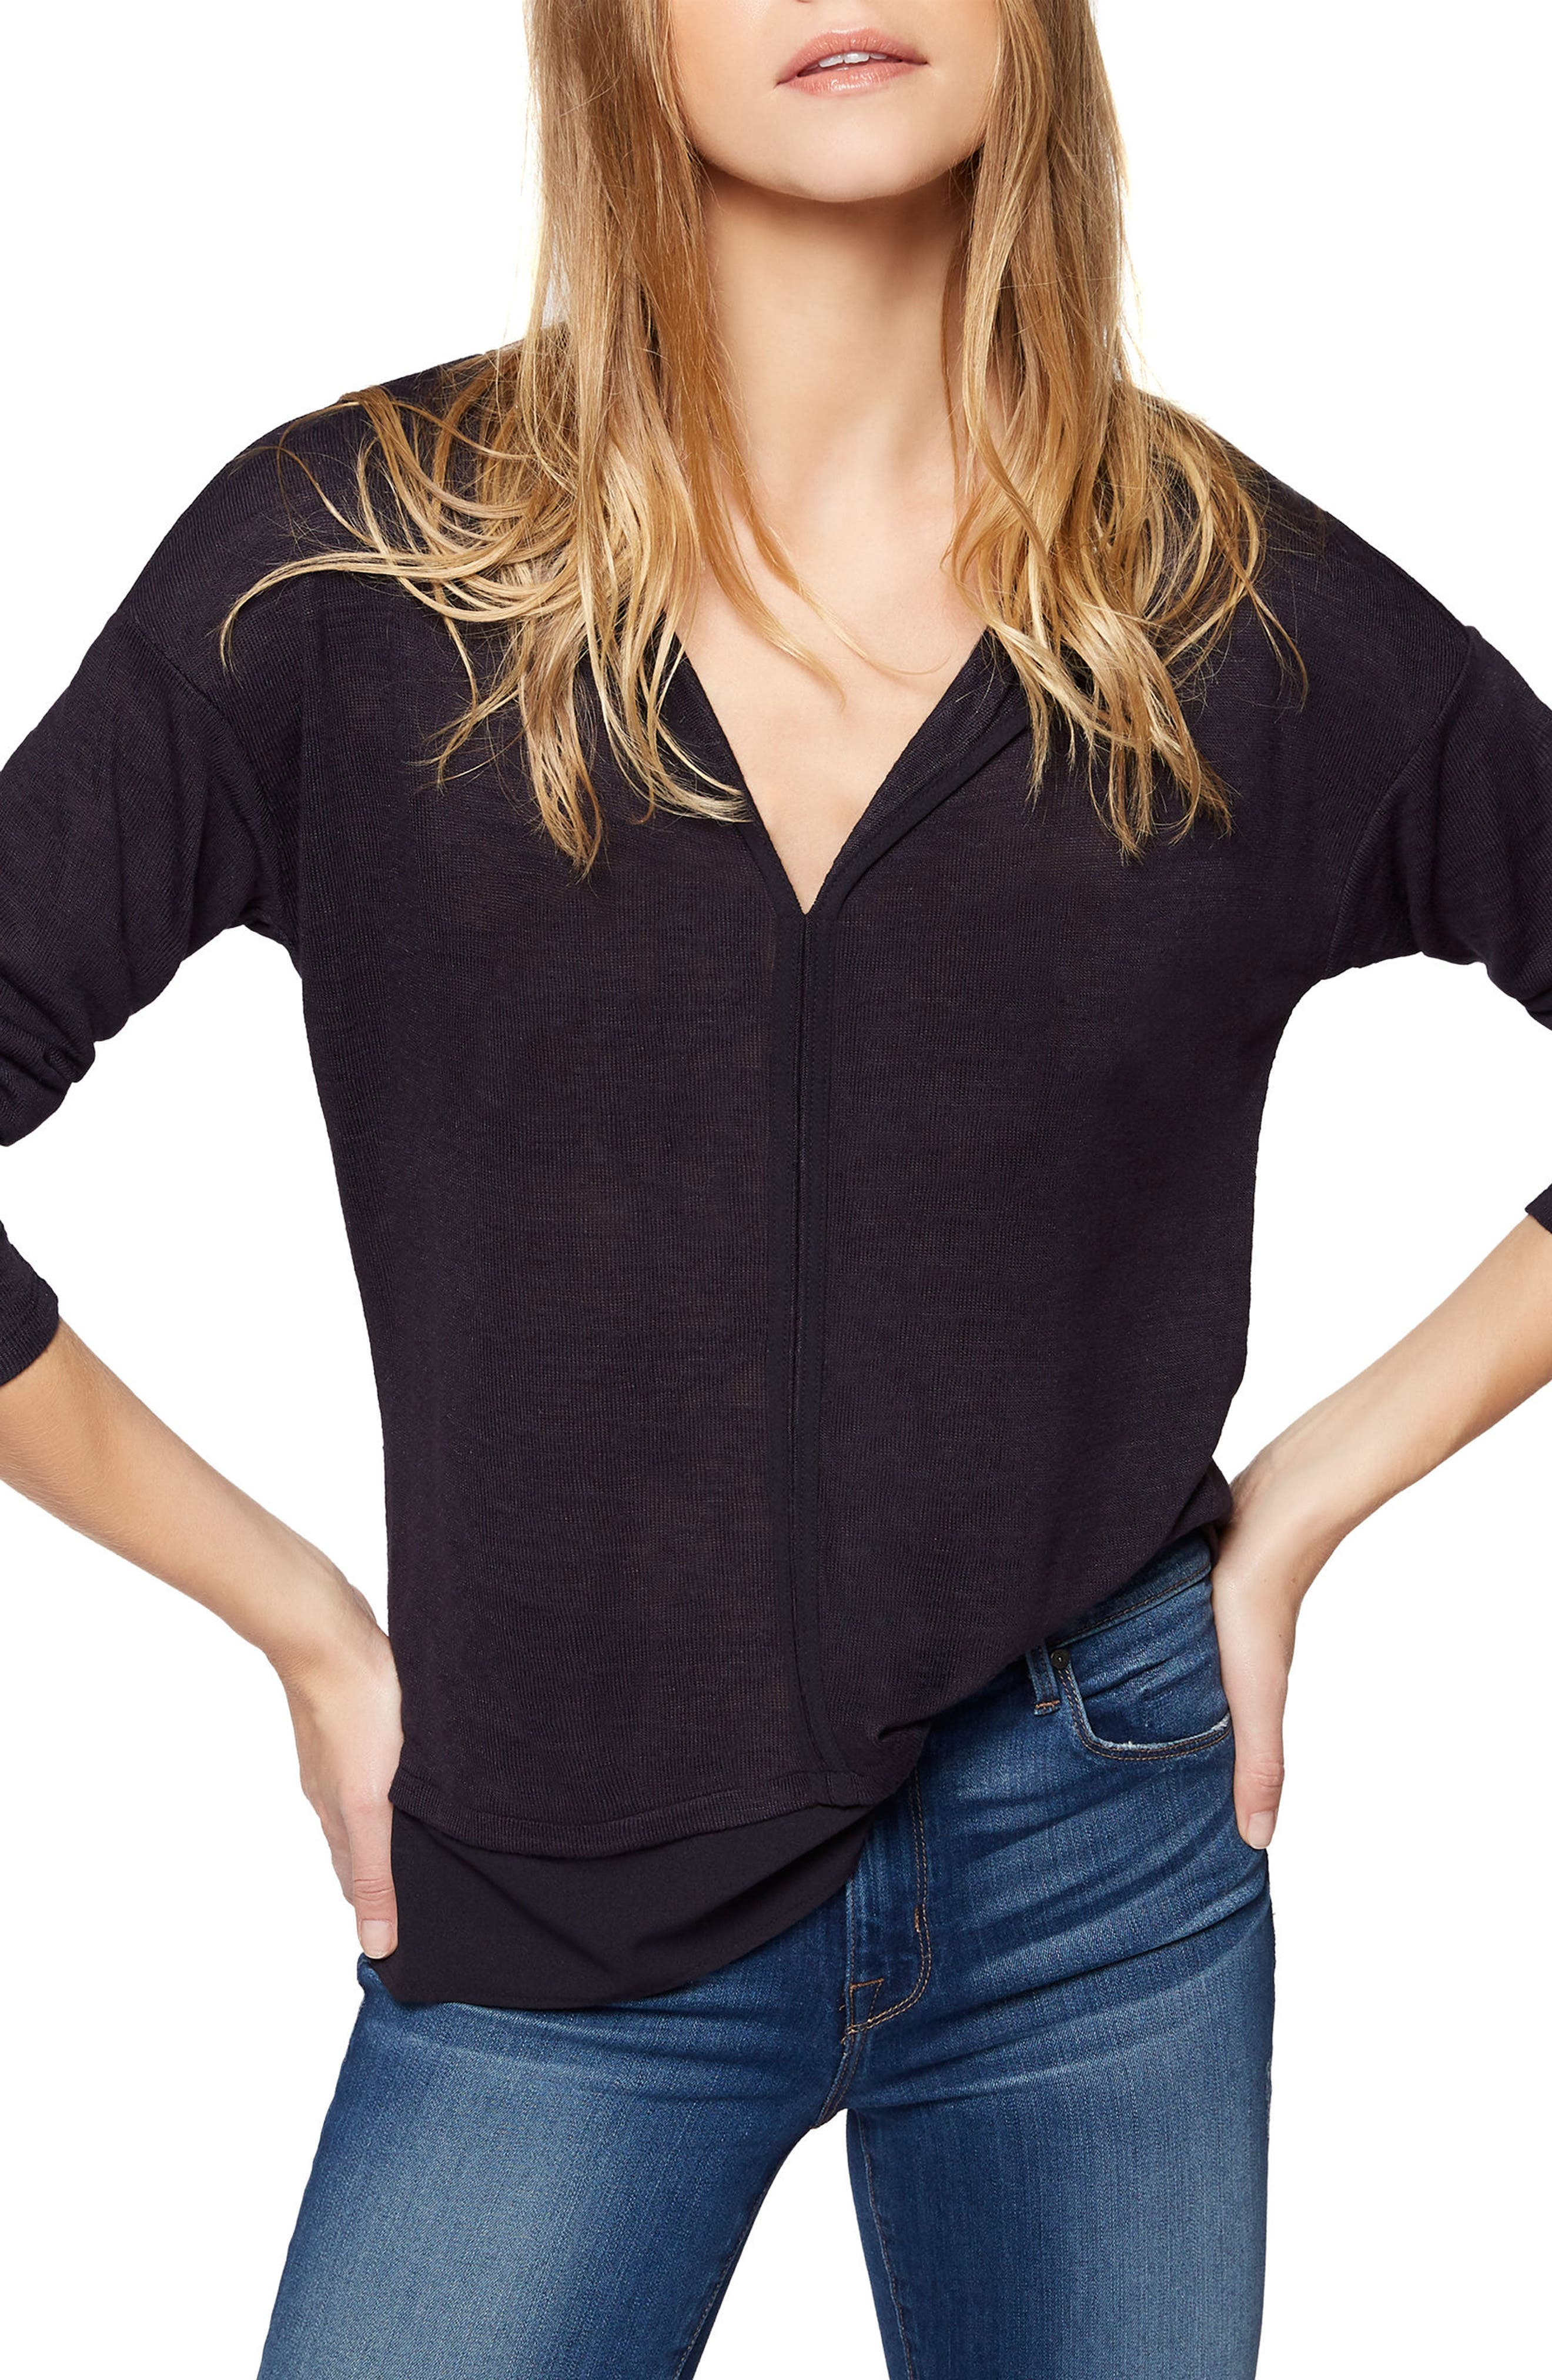 Alternate Image 1 Selected - Sanctuary 'Hanna' Split Neck Knit Top (Regular & Petite)